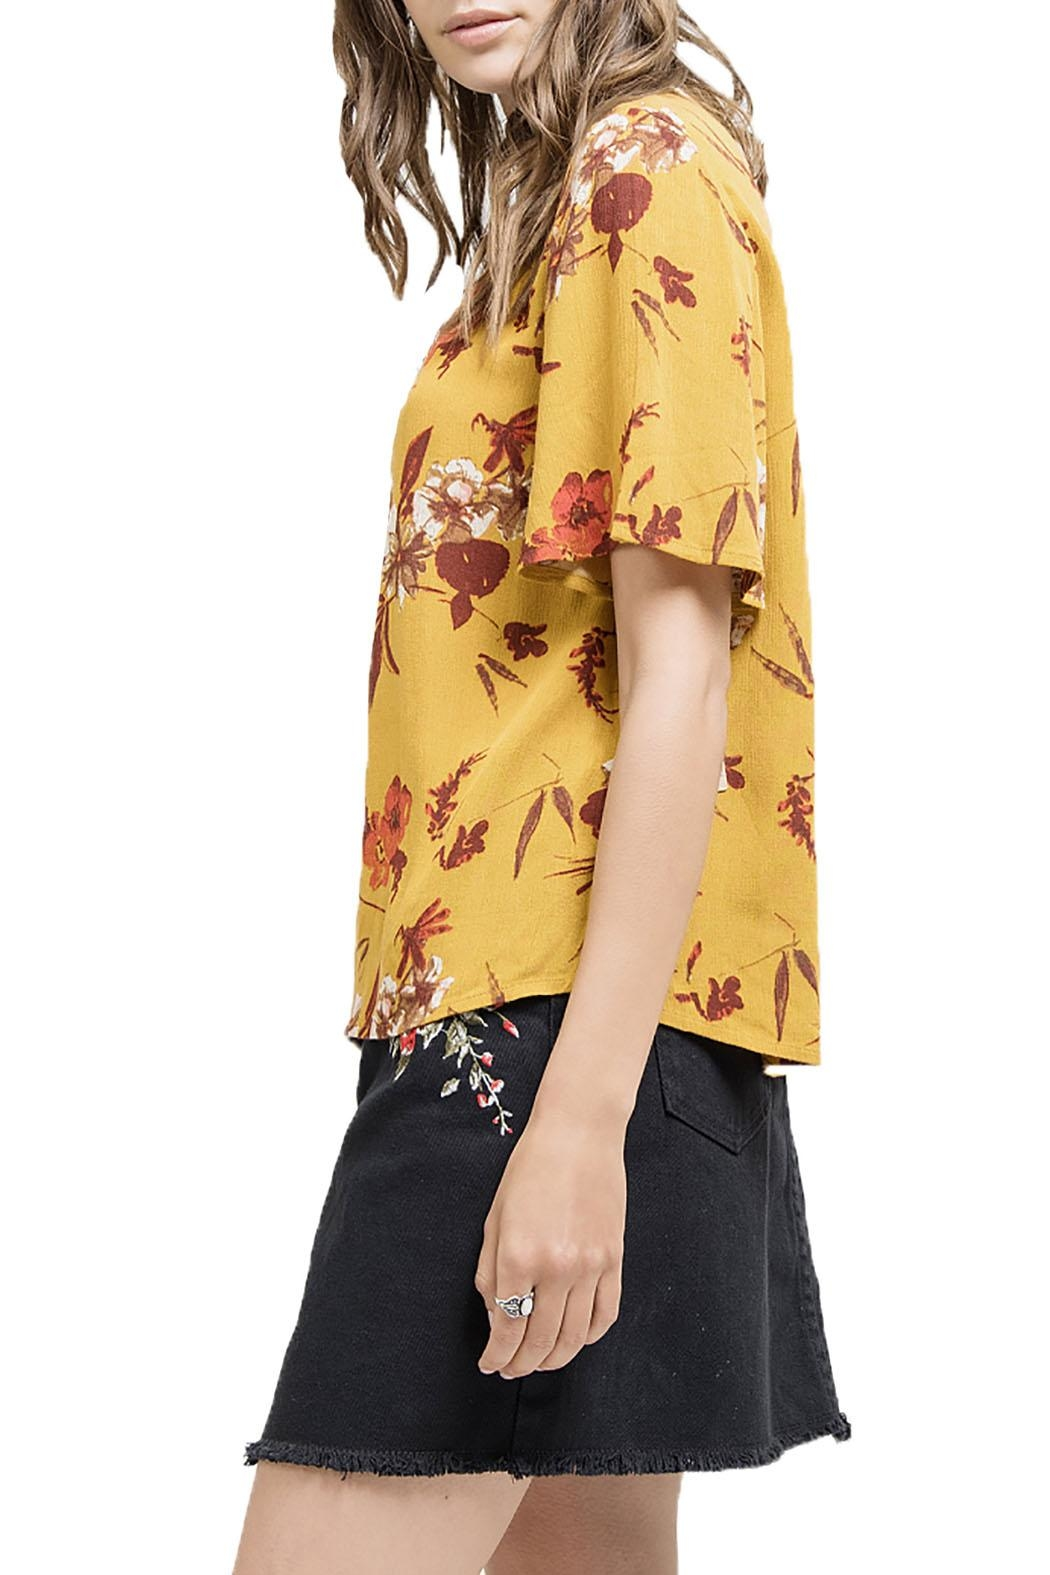 Blu Pepper V-Neck Floral Shirt - Side Cropped Image